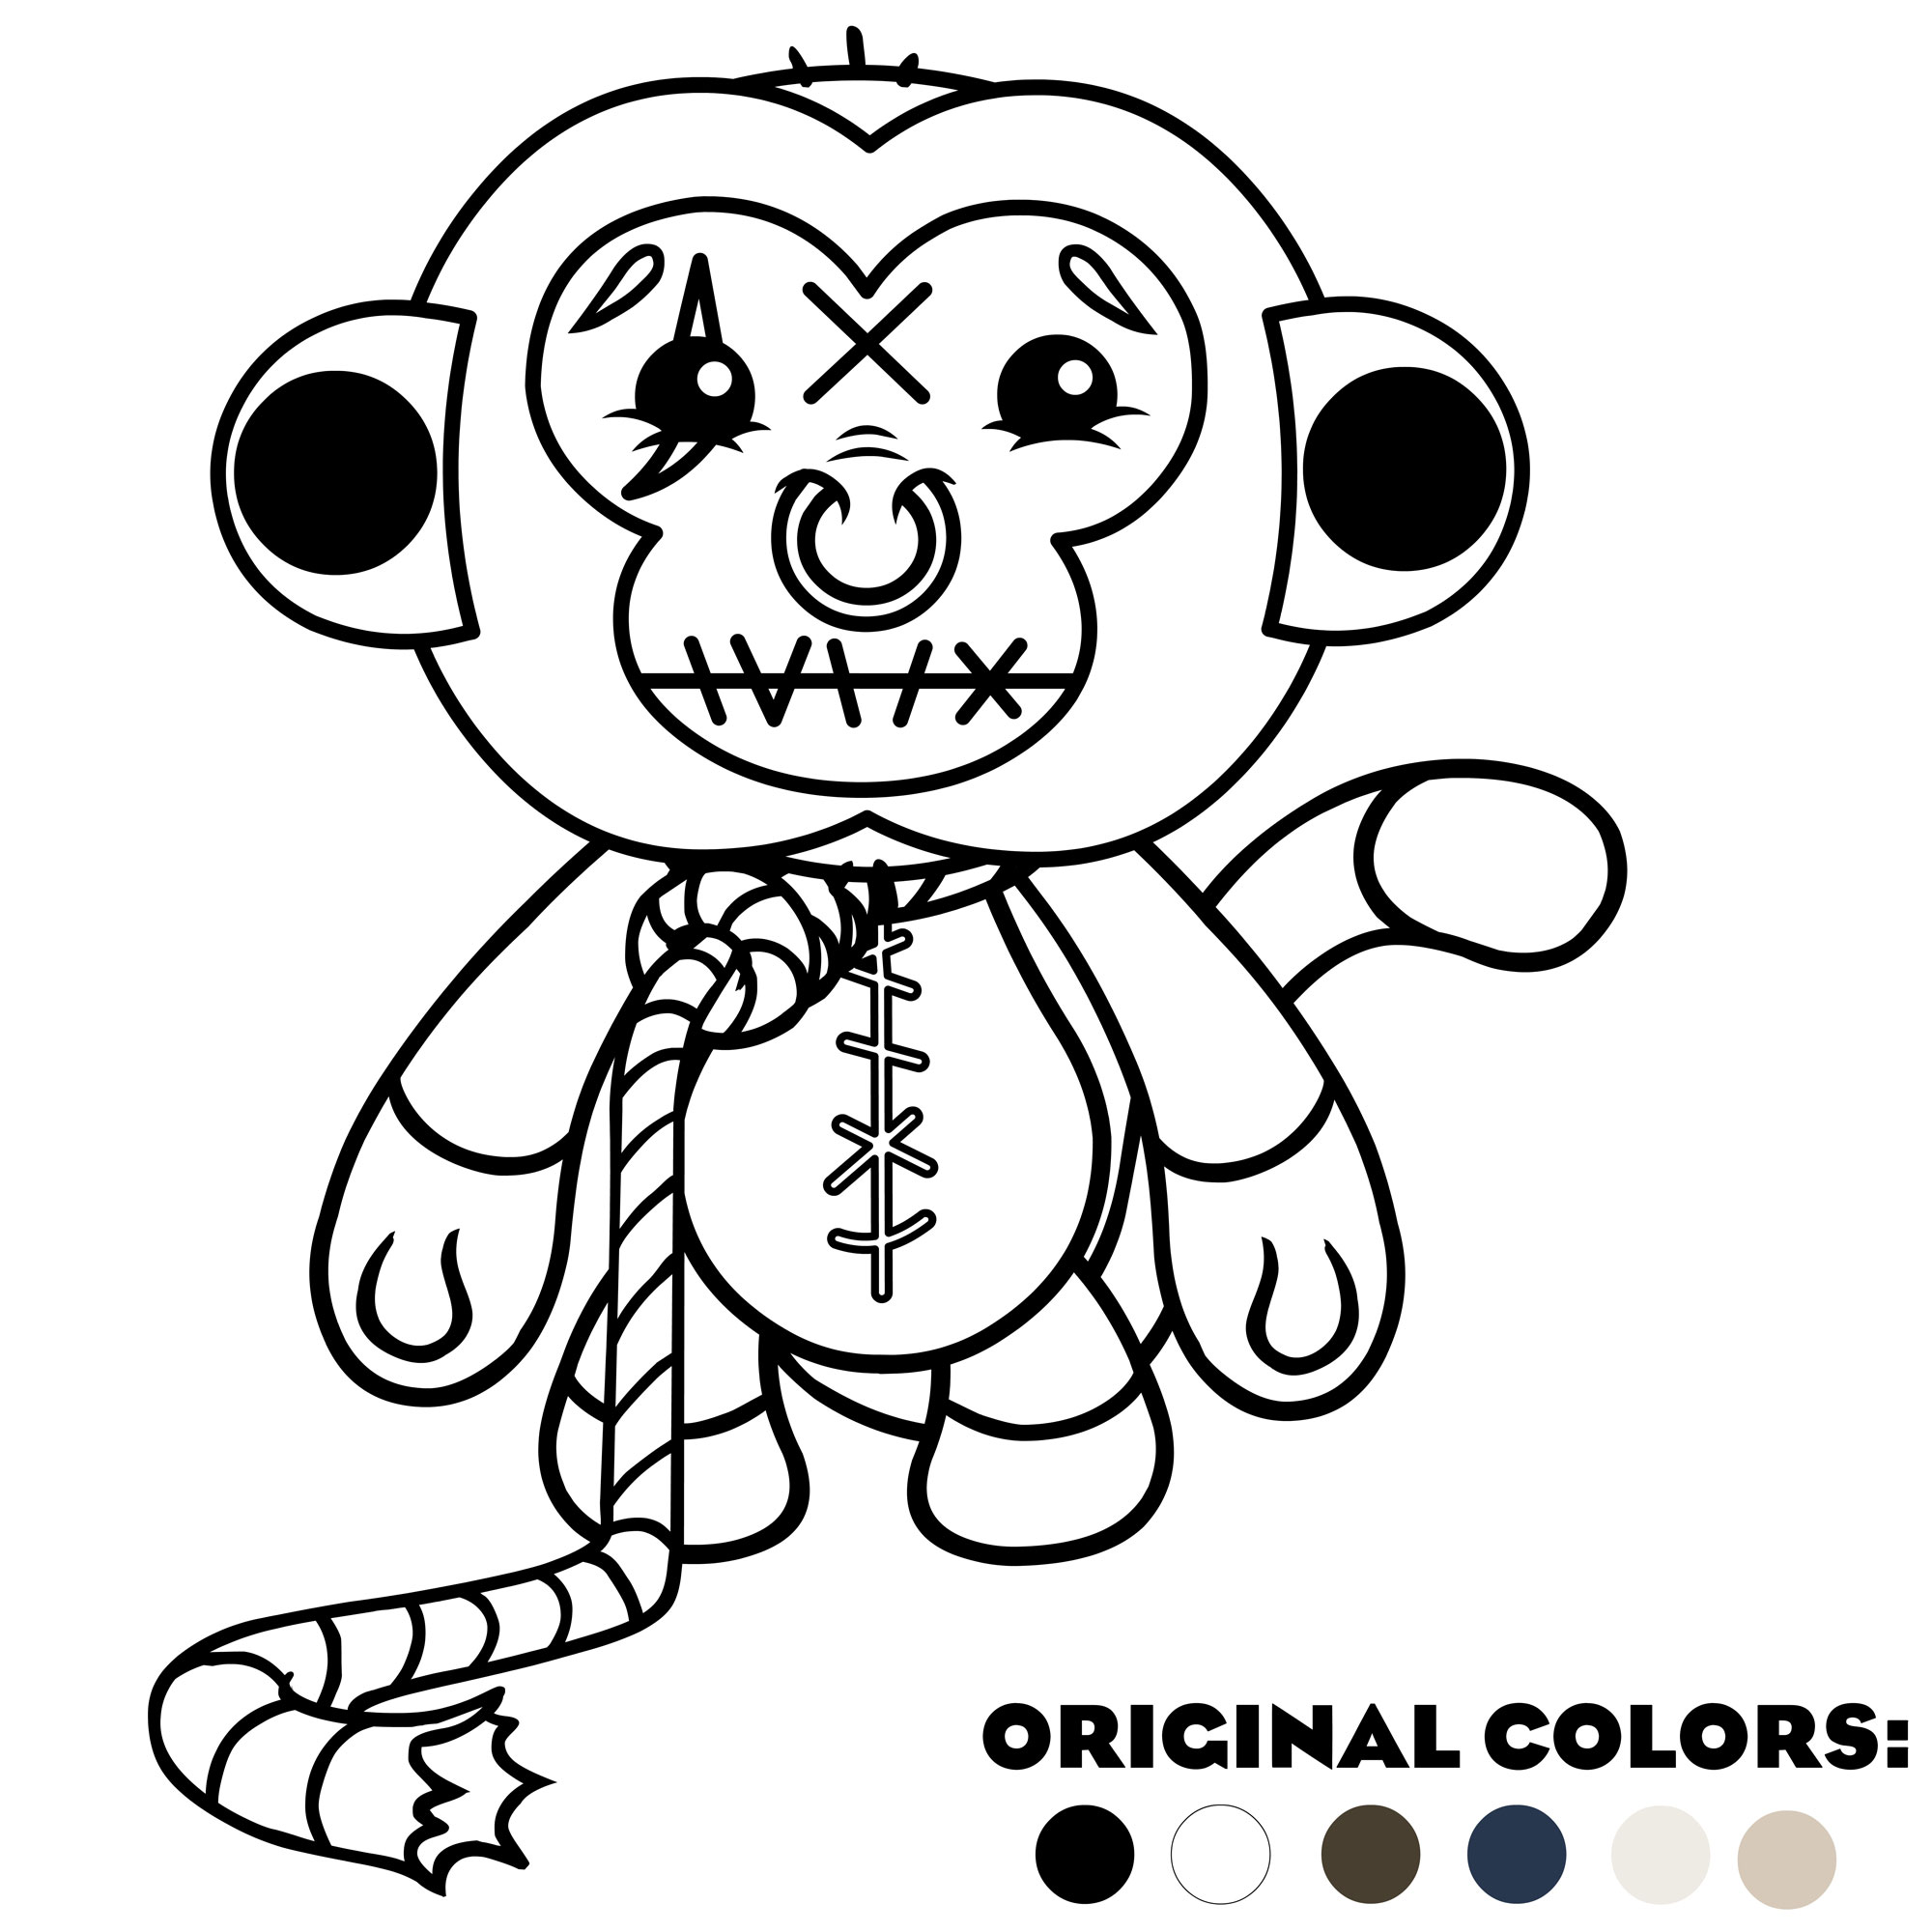 Coloring-Book---Normal-Monkey.jpg